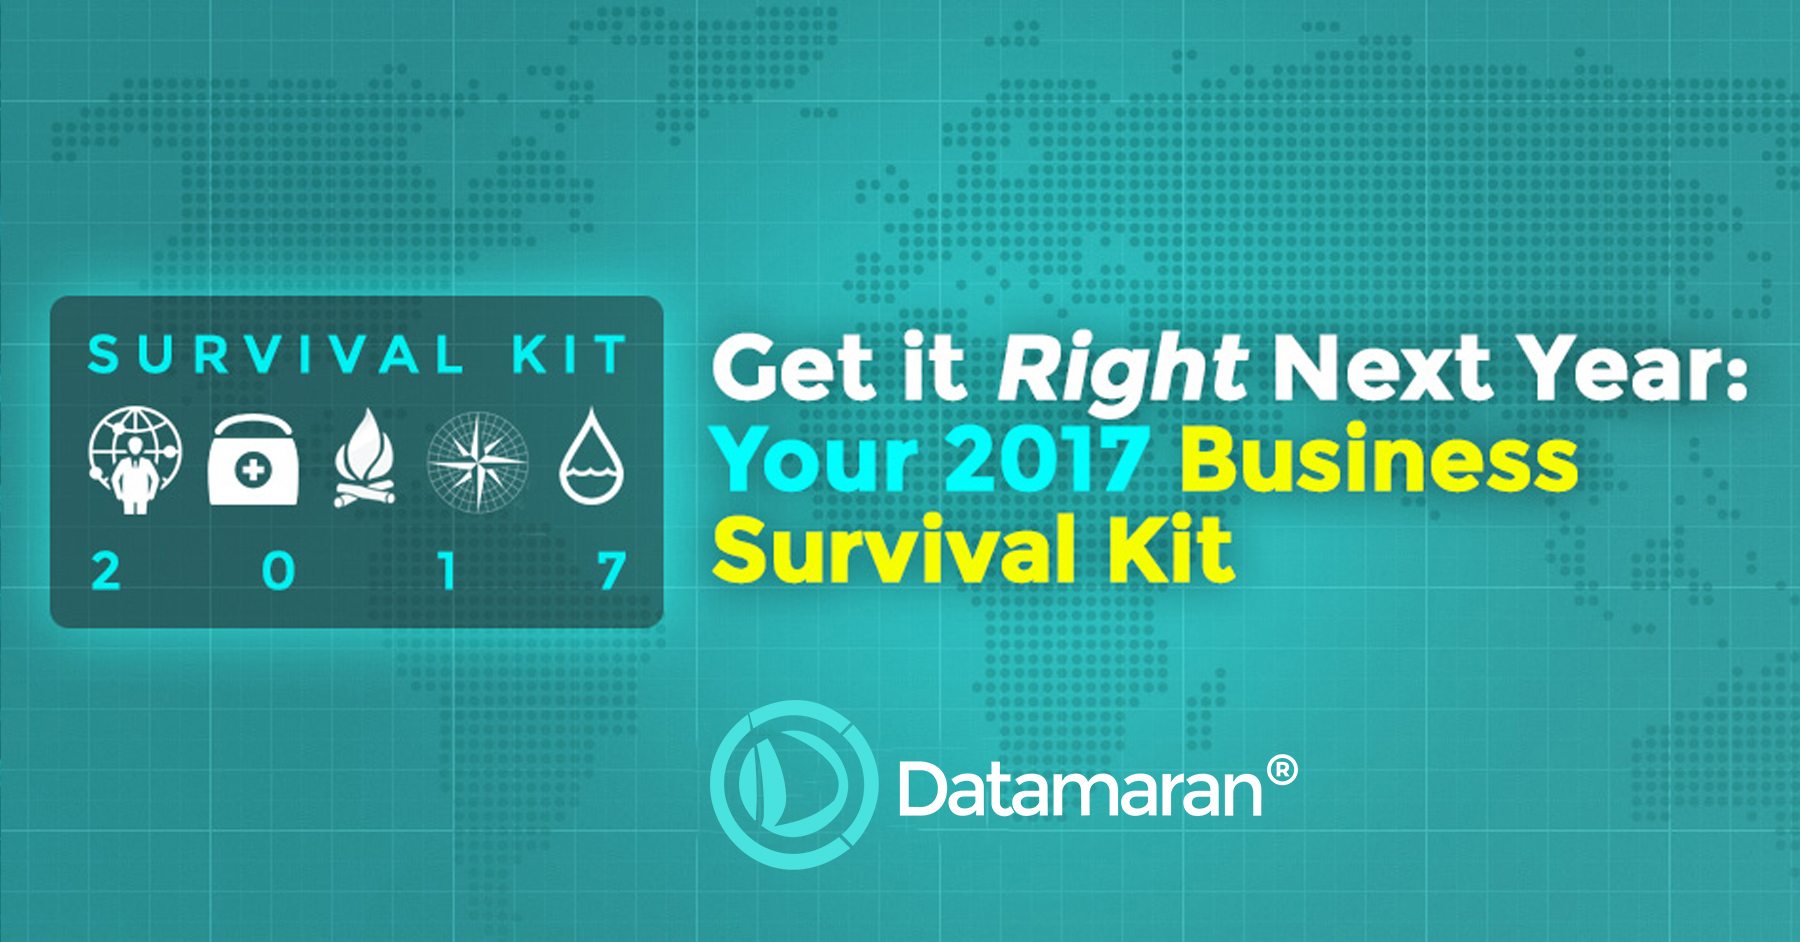 Get it Right Next Year: 2017 Business Survival Kit